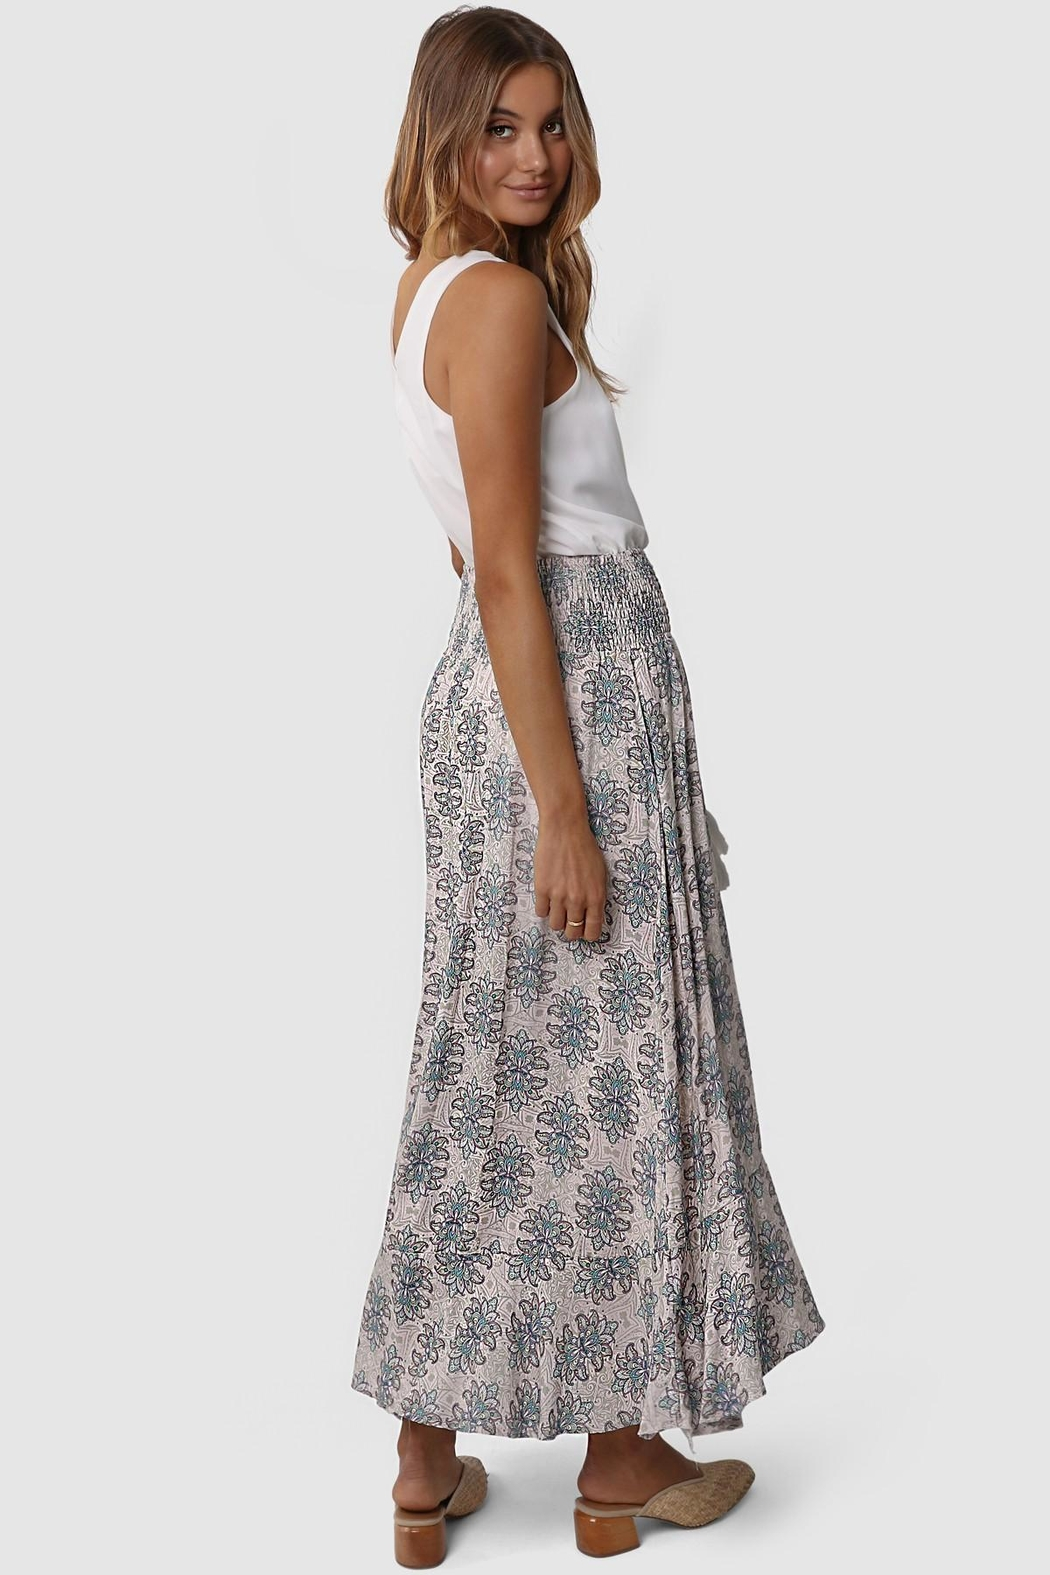 Lost in Lunar Evie Maxi Skirt - Back Cropped Image